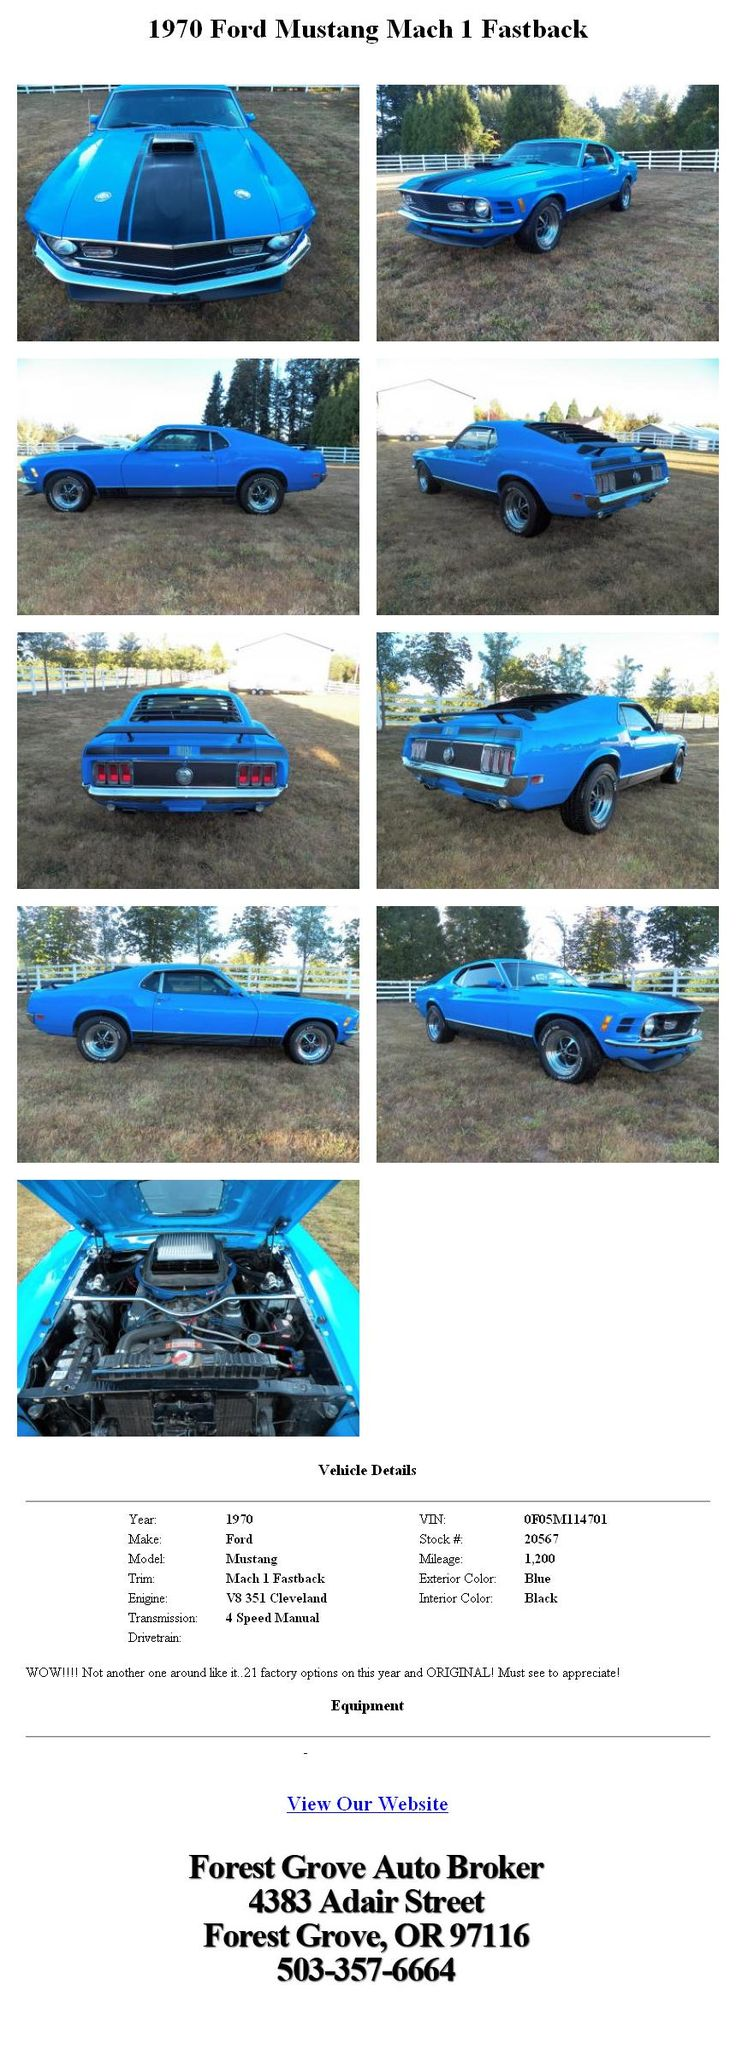 1970 ford mustang mach 1 fastback i want it